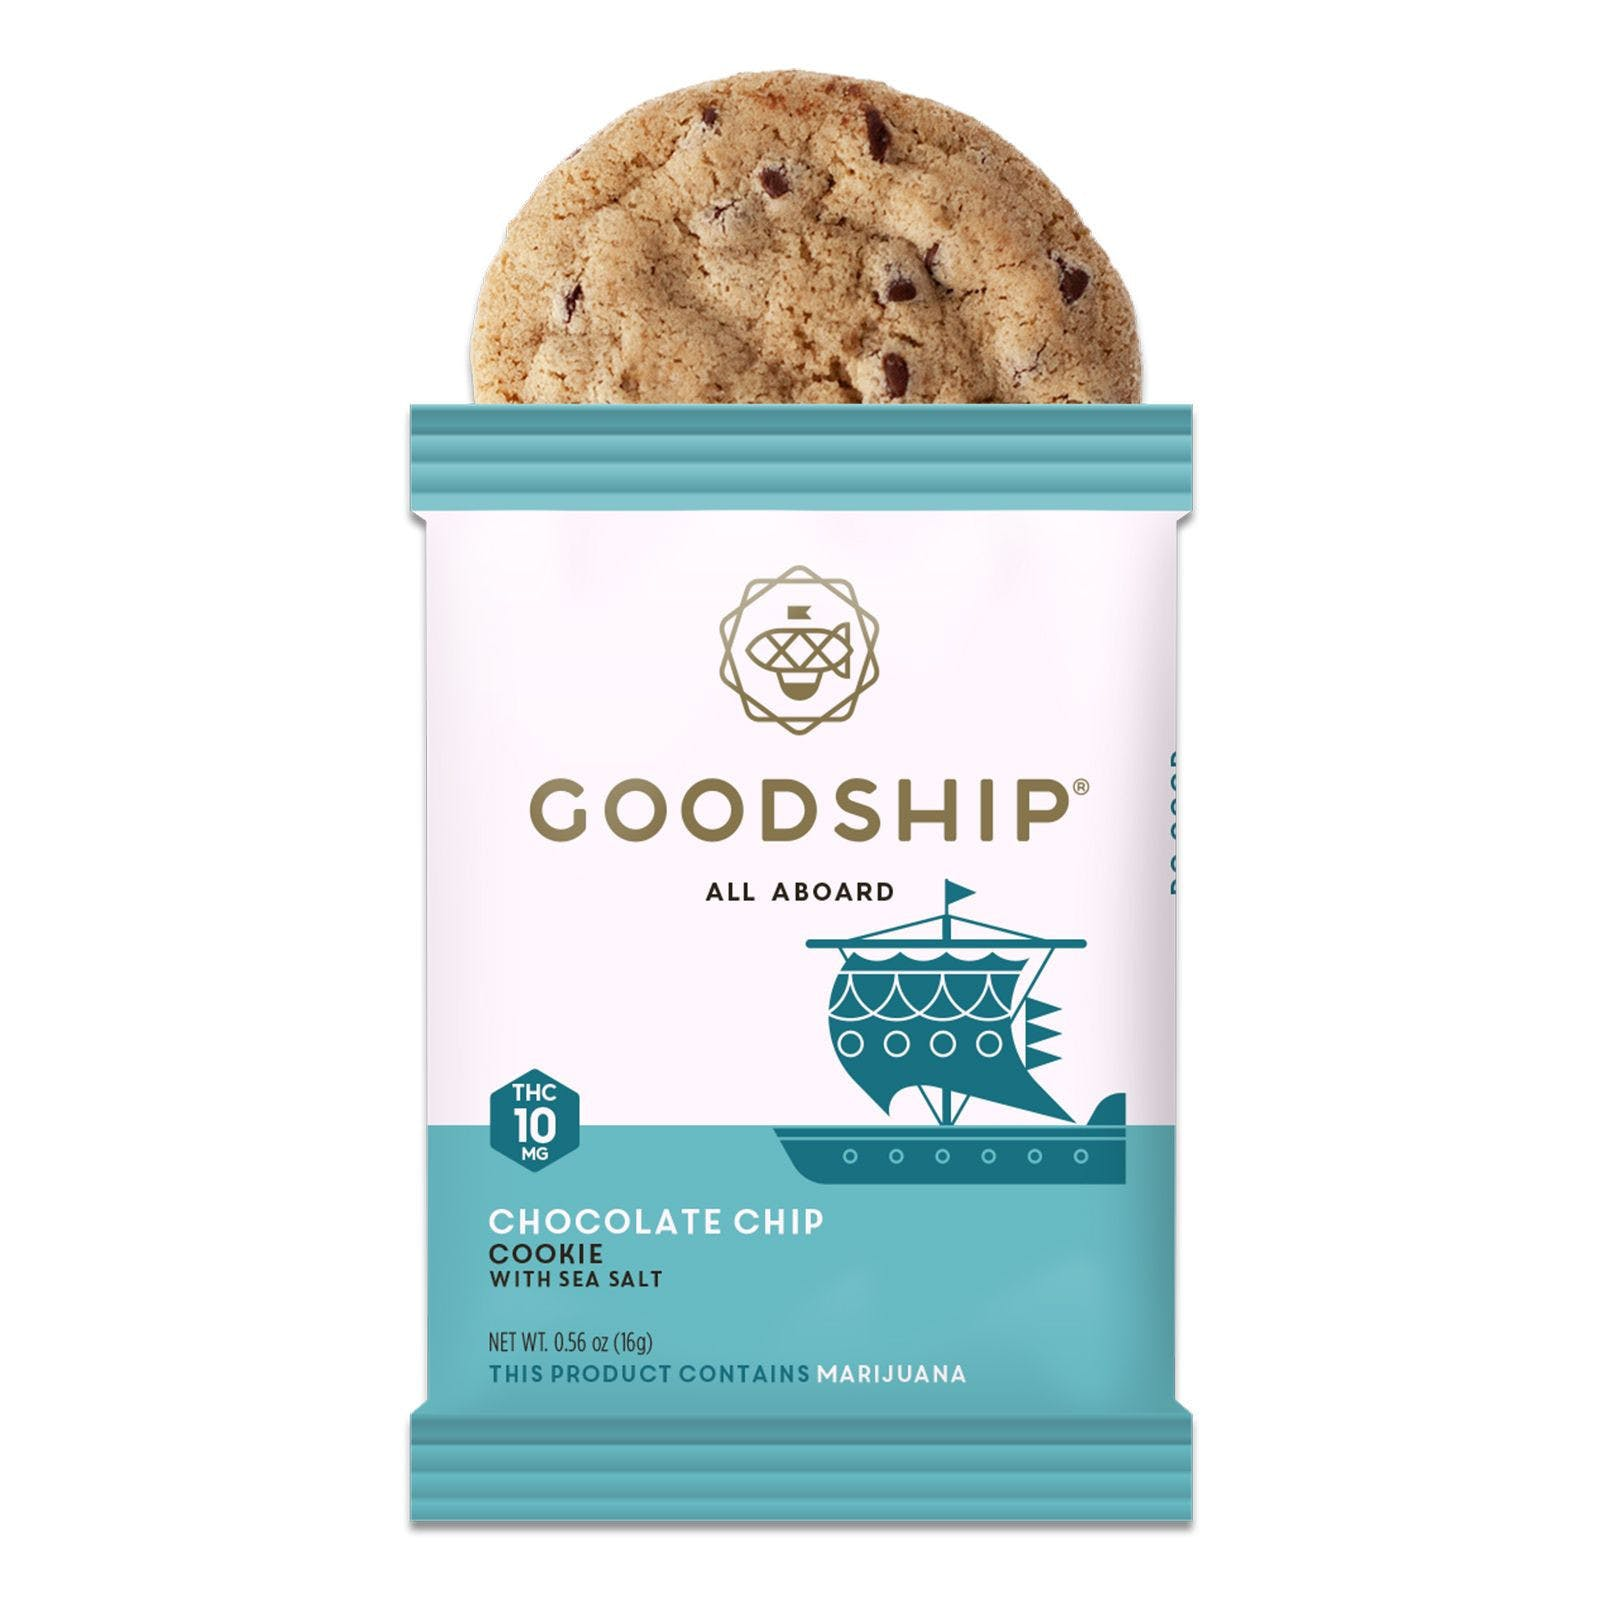 edible-chocolate-chip-cookie-10mg-goodship